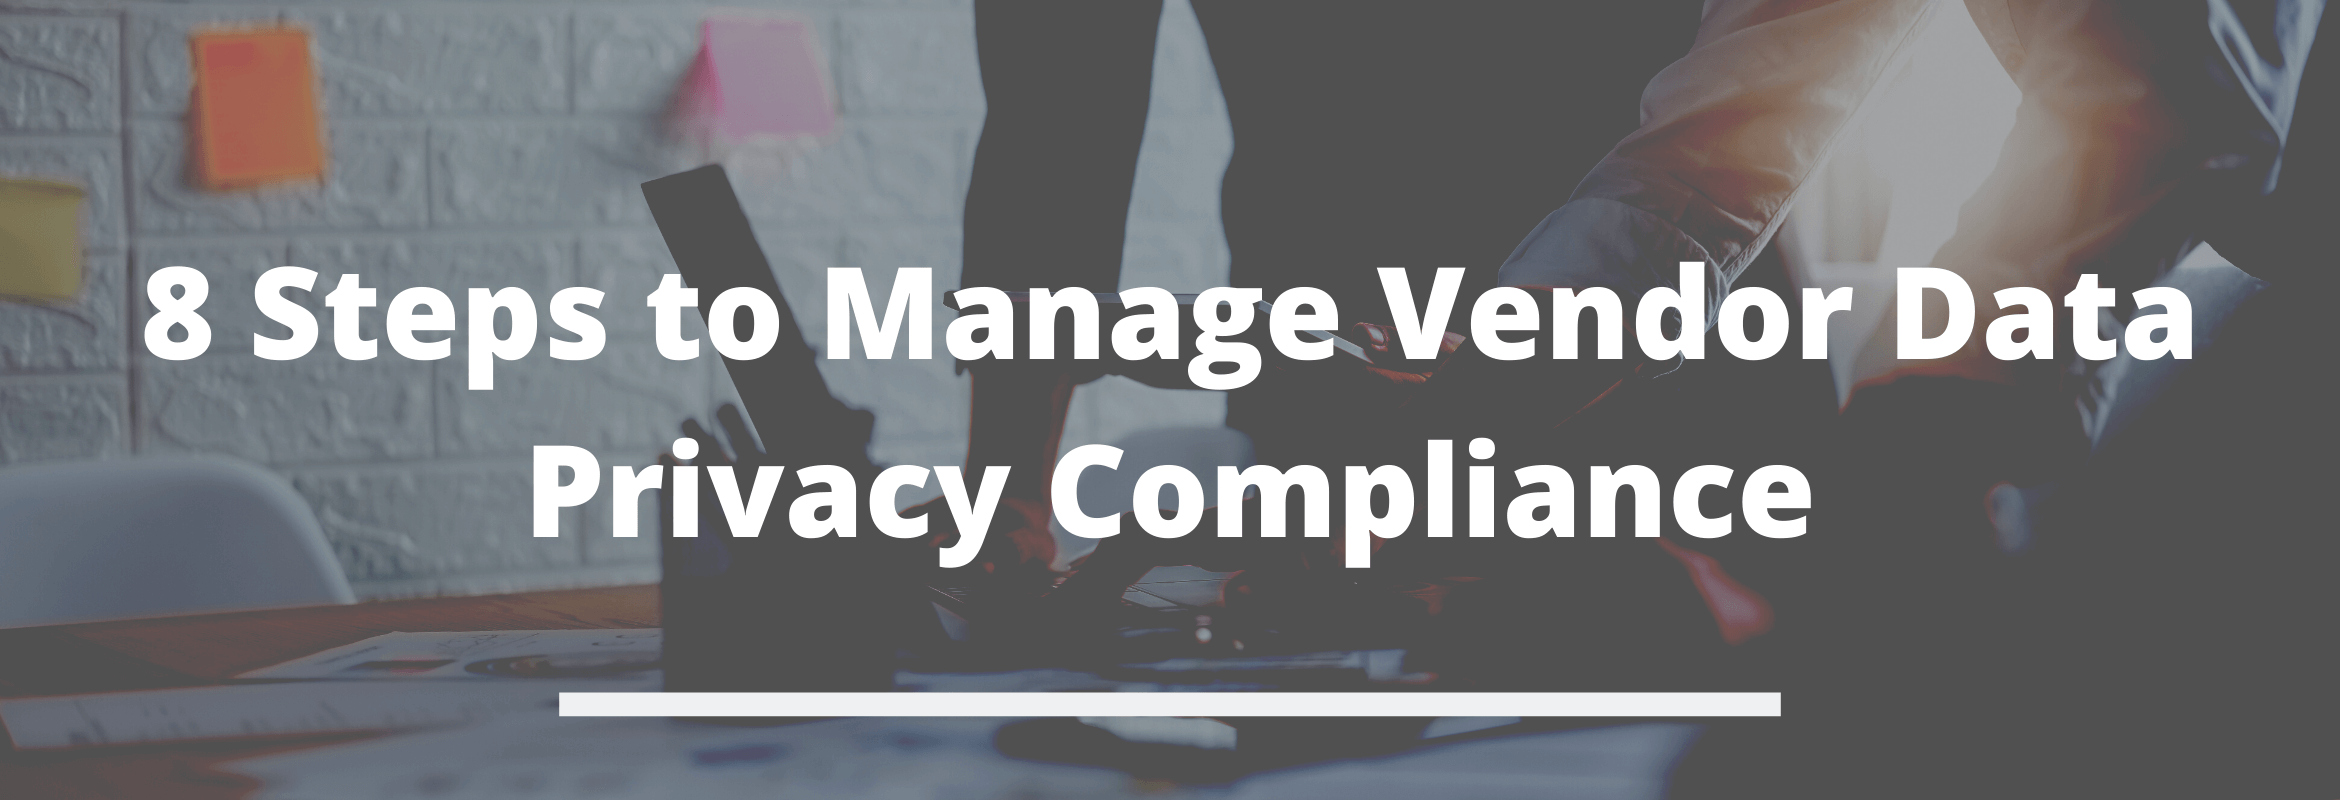 Eight vital steps organizations can take to ensure that vendors aren't jeopardizing data privacy compliance.